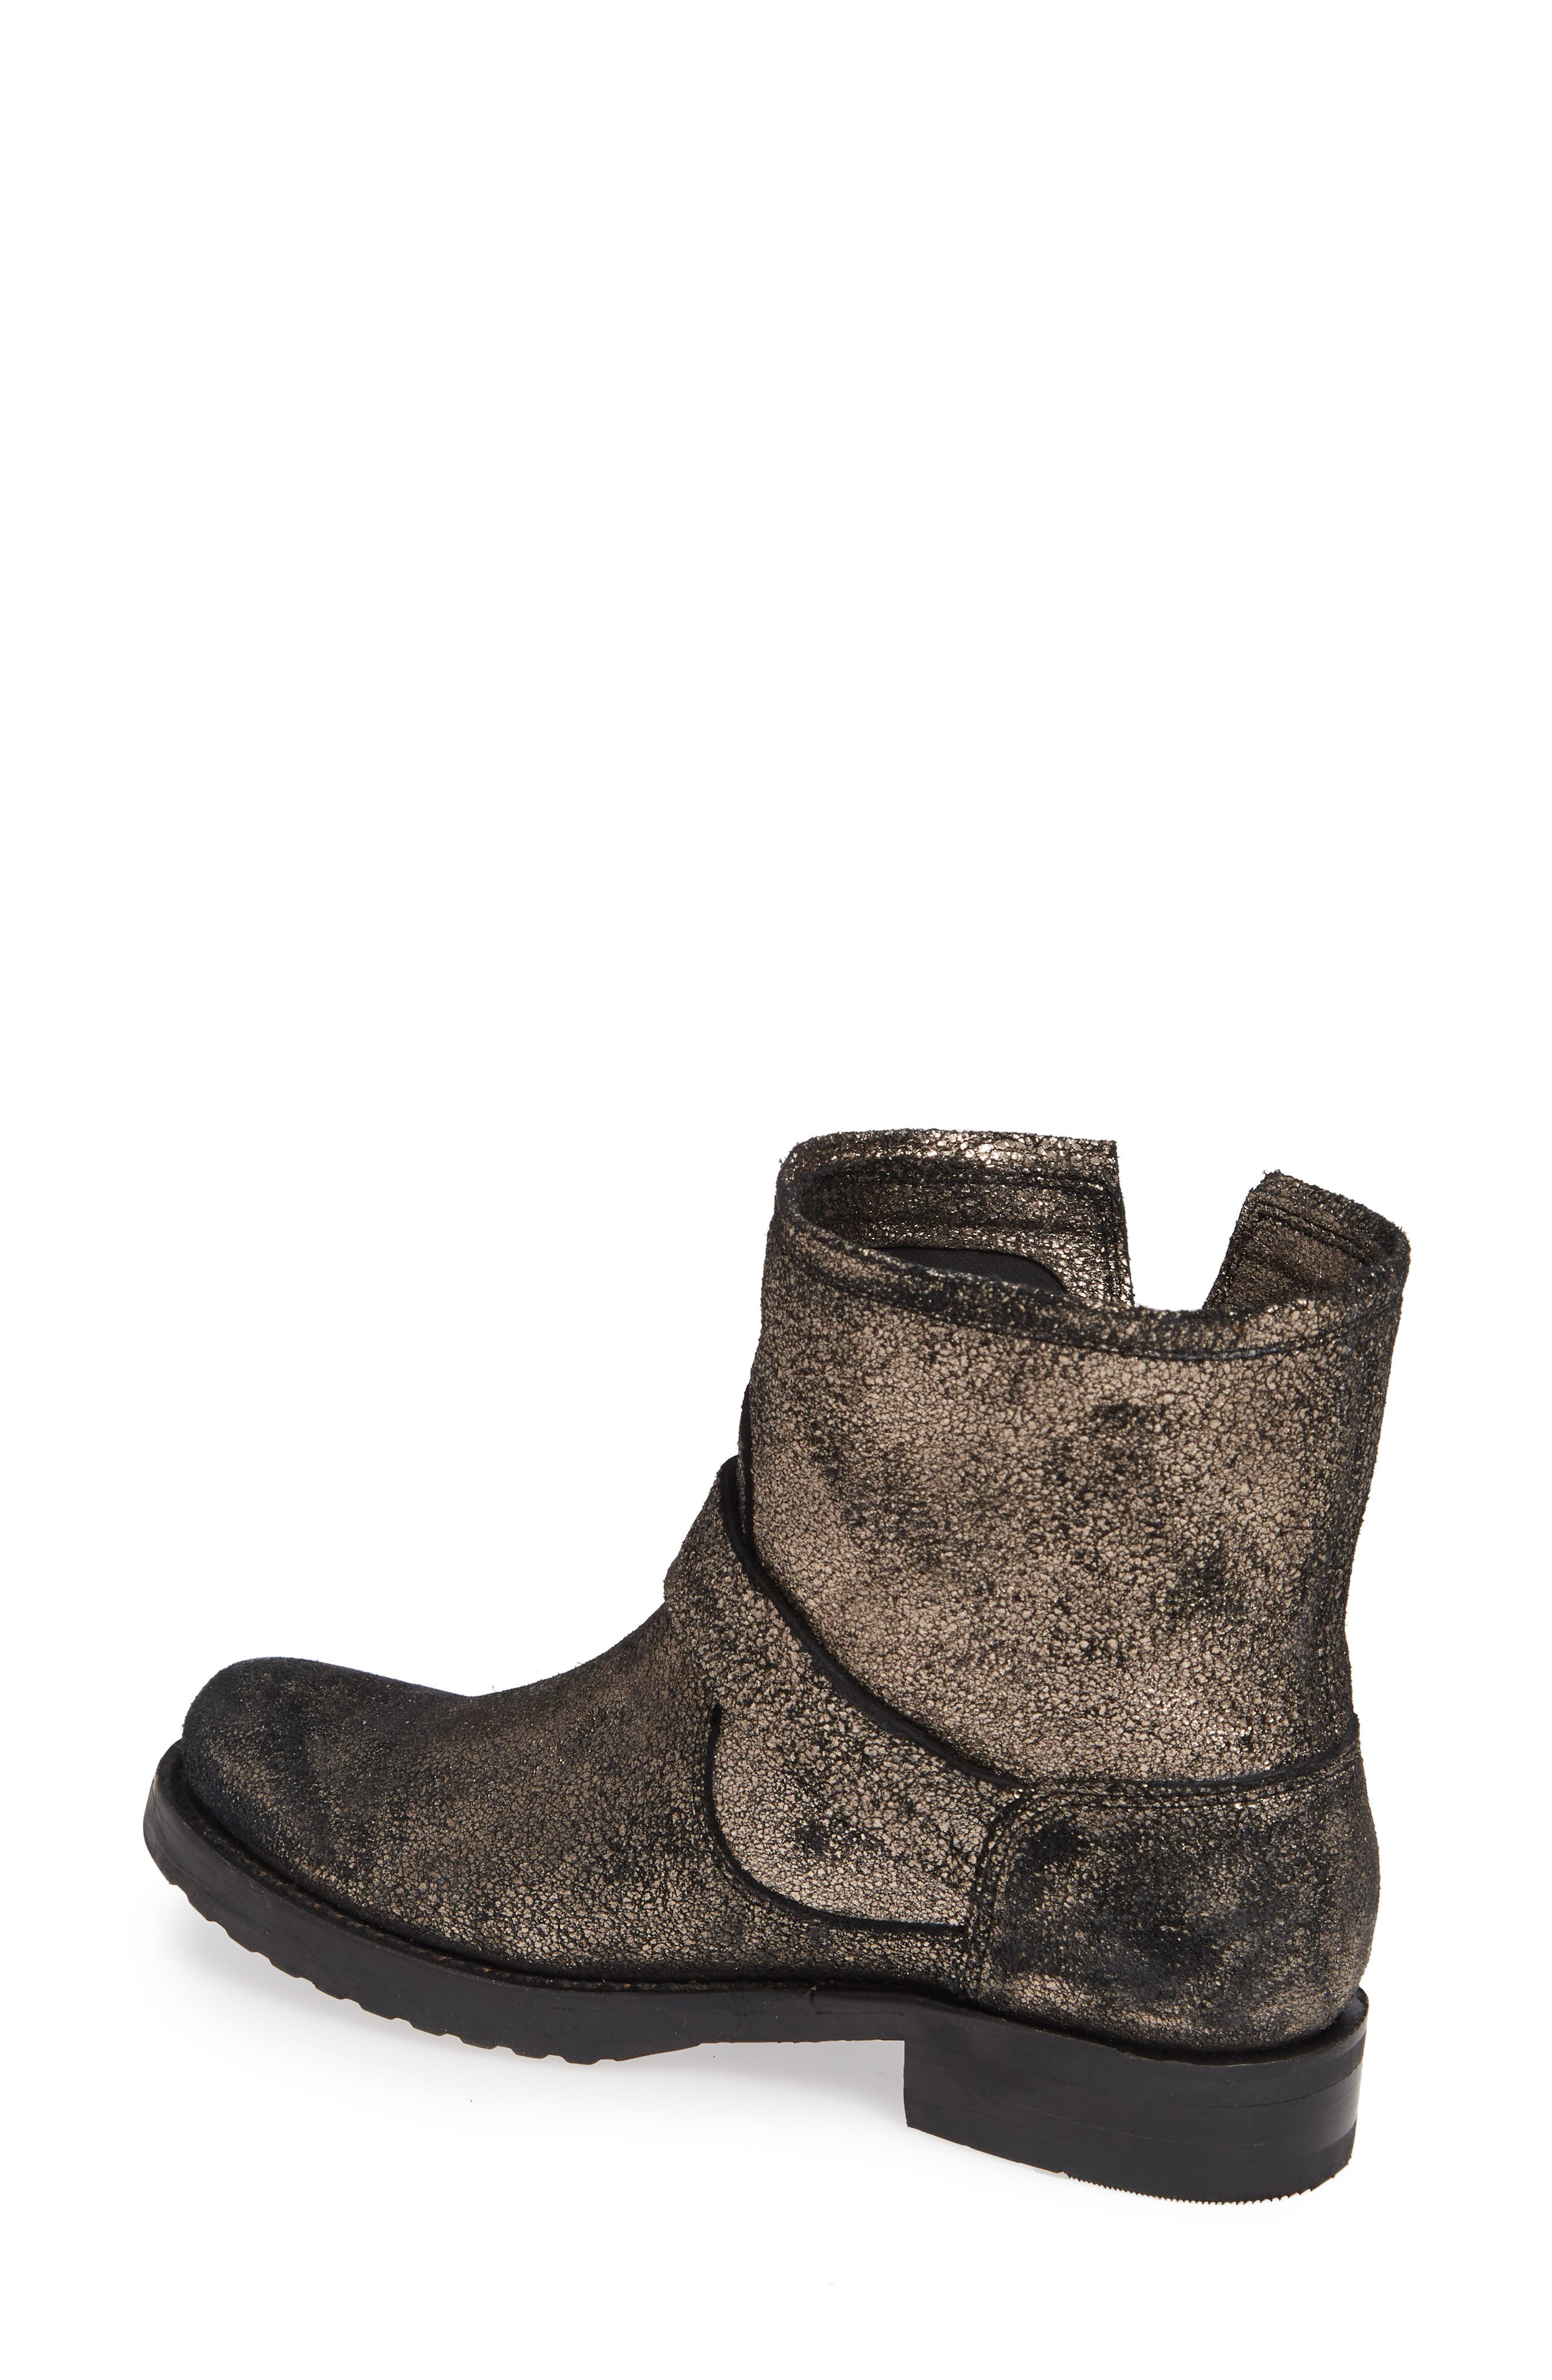 Veronica Bootie,                             Alternate thumbnail 2, color,                             GOLD LEATHER